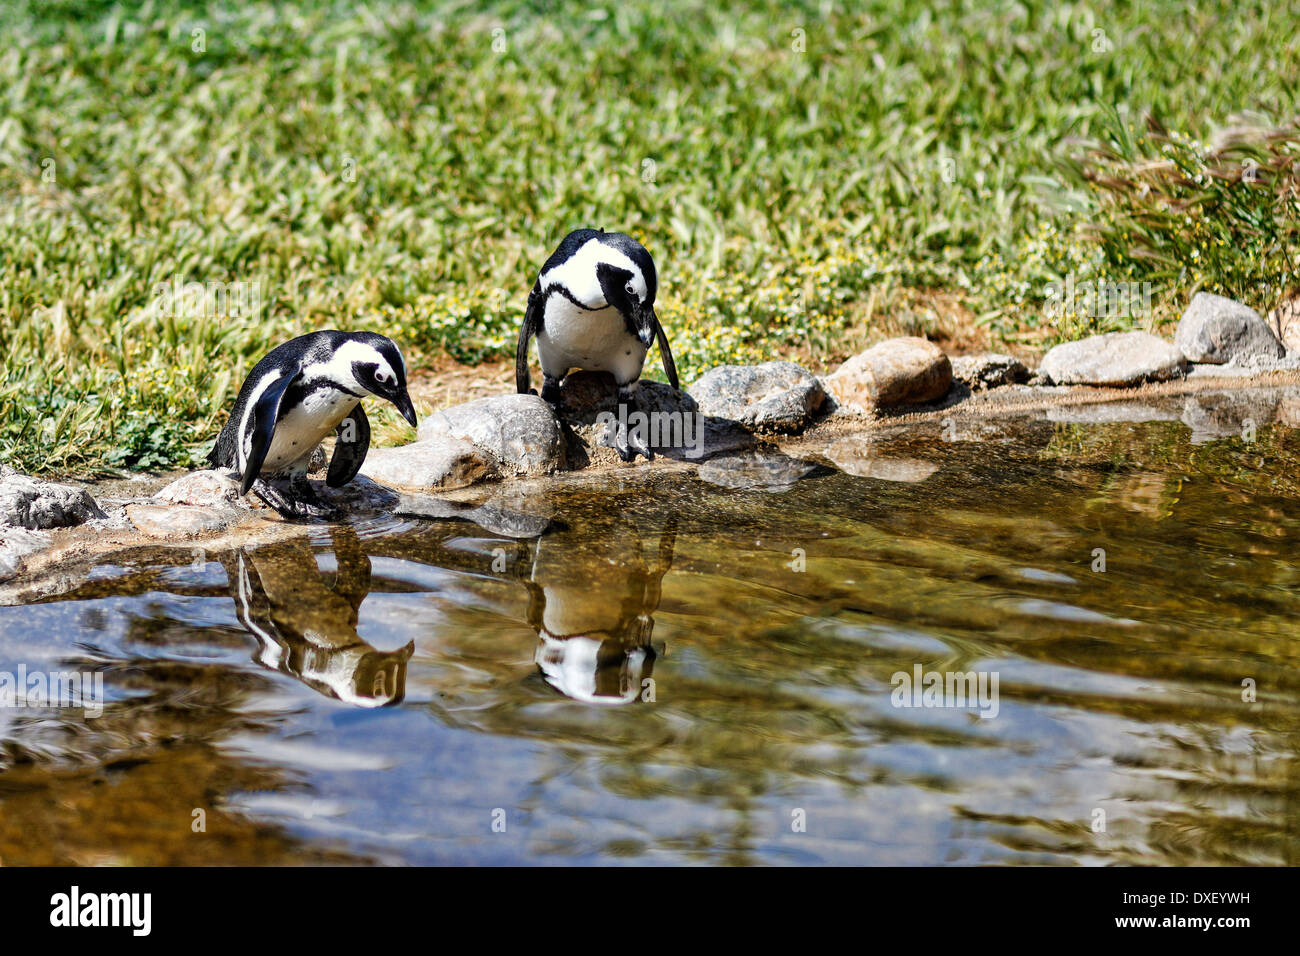 Penguins in the zoo - Stock Image